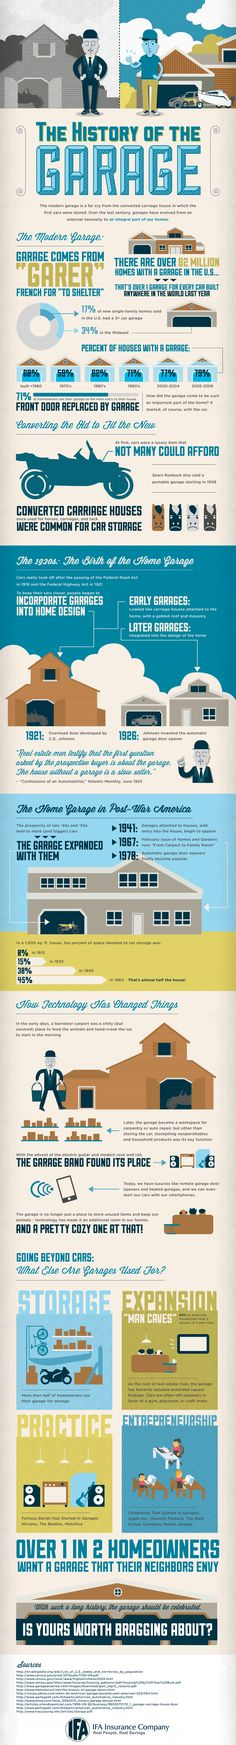 Infographic: The history of the garage